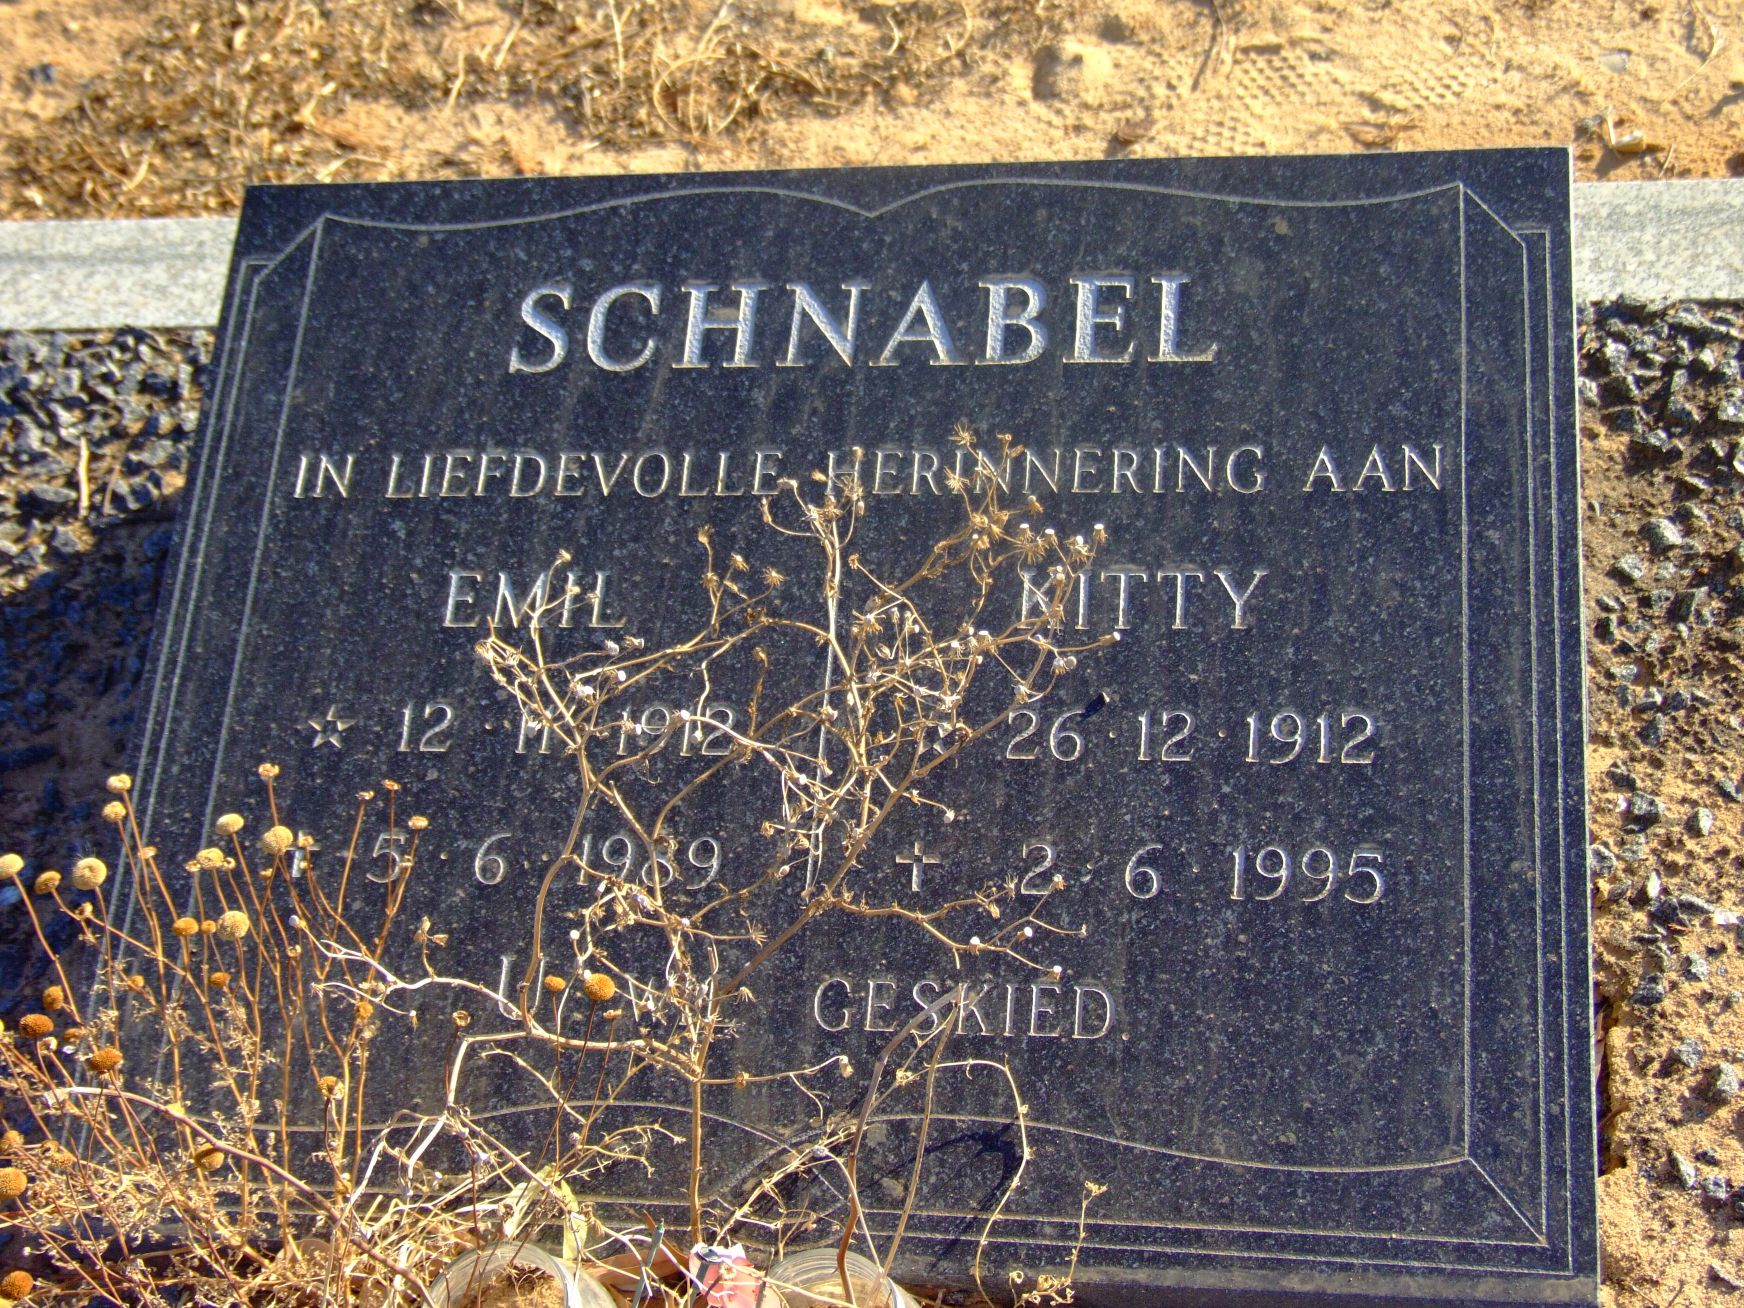 Schnable, Emil + Schnabel, Kitty